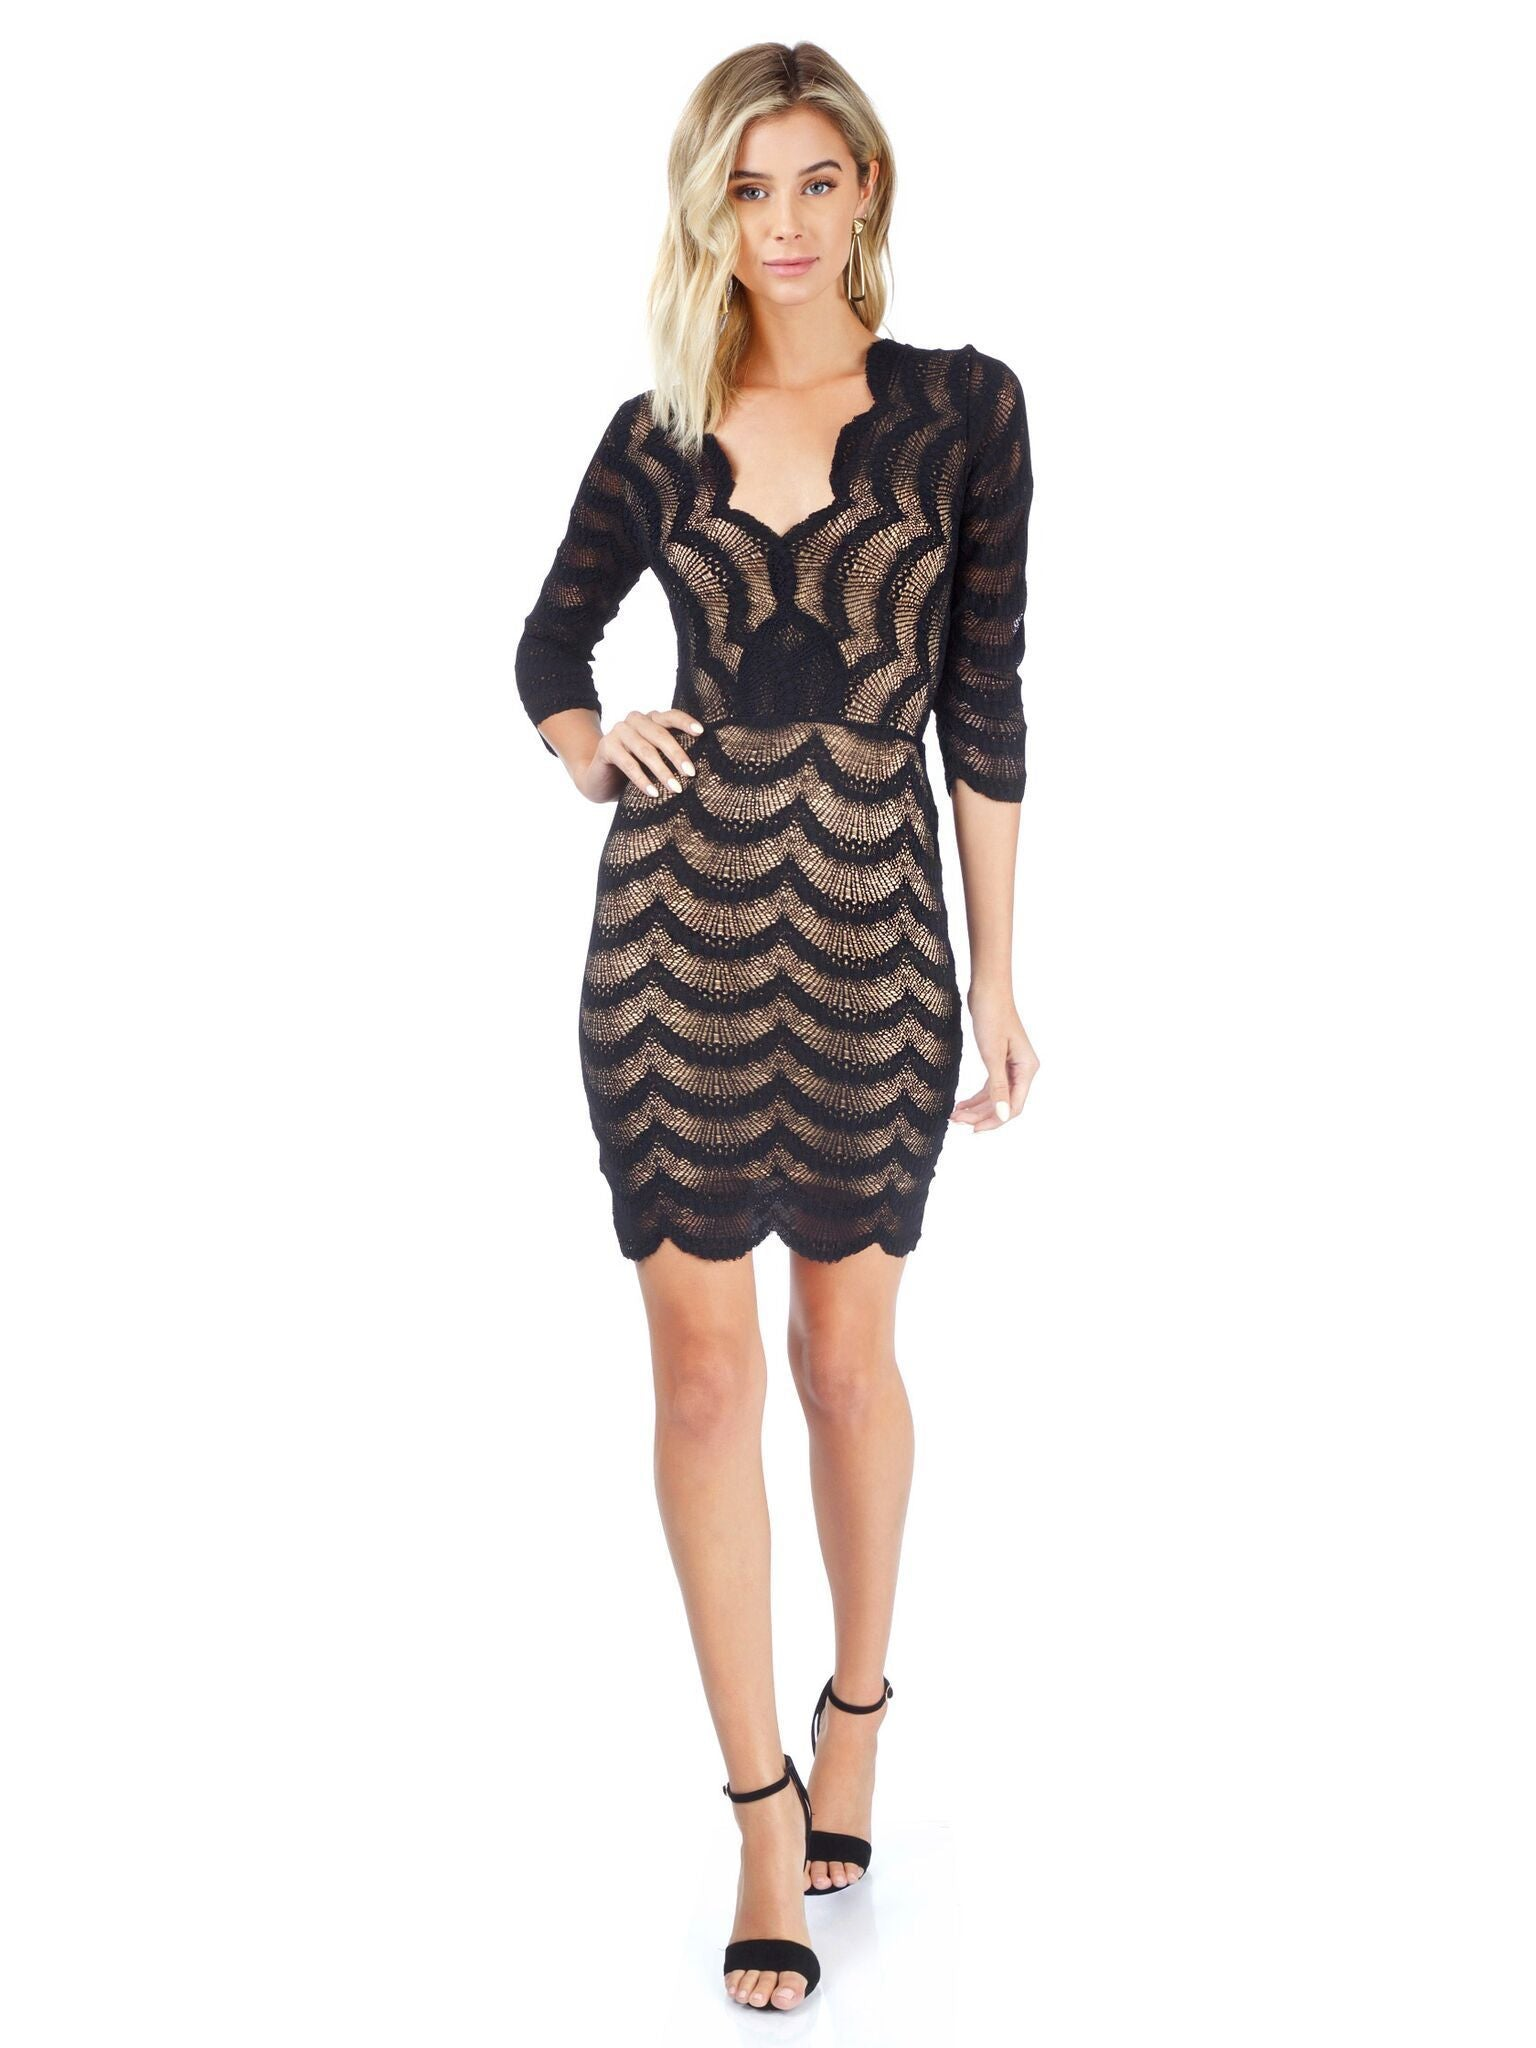 Girl outfit in a dress rental from Nightcap Clothing called Fiesta Fan Lace Deep V Dress